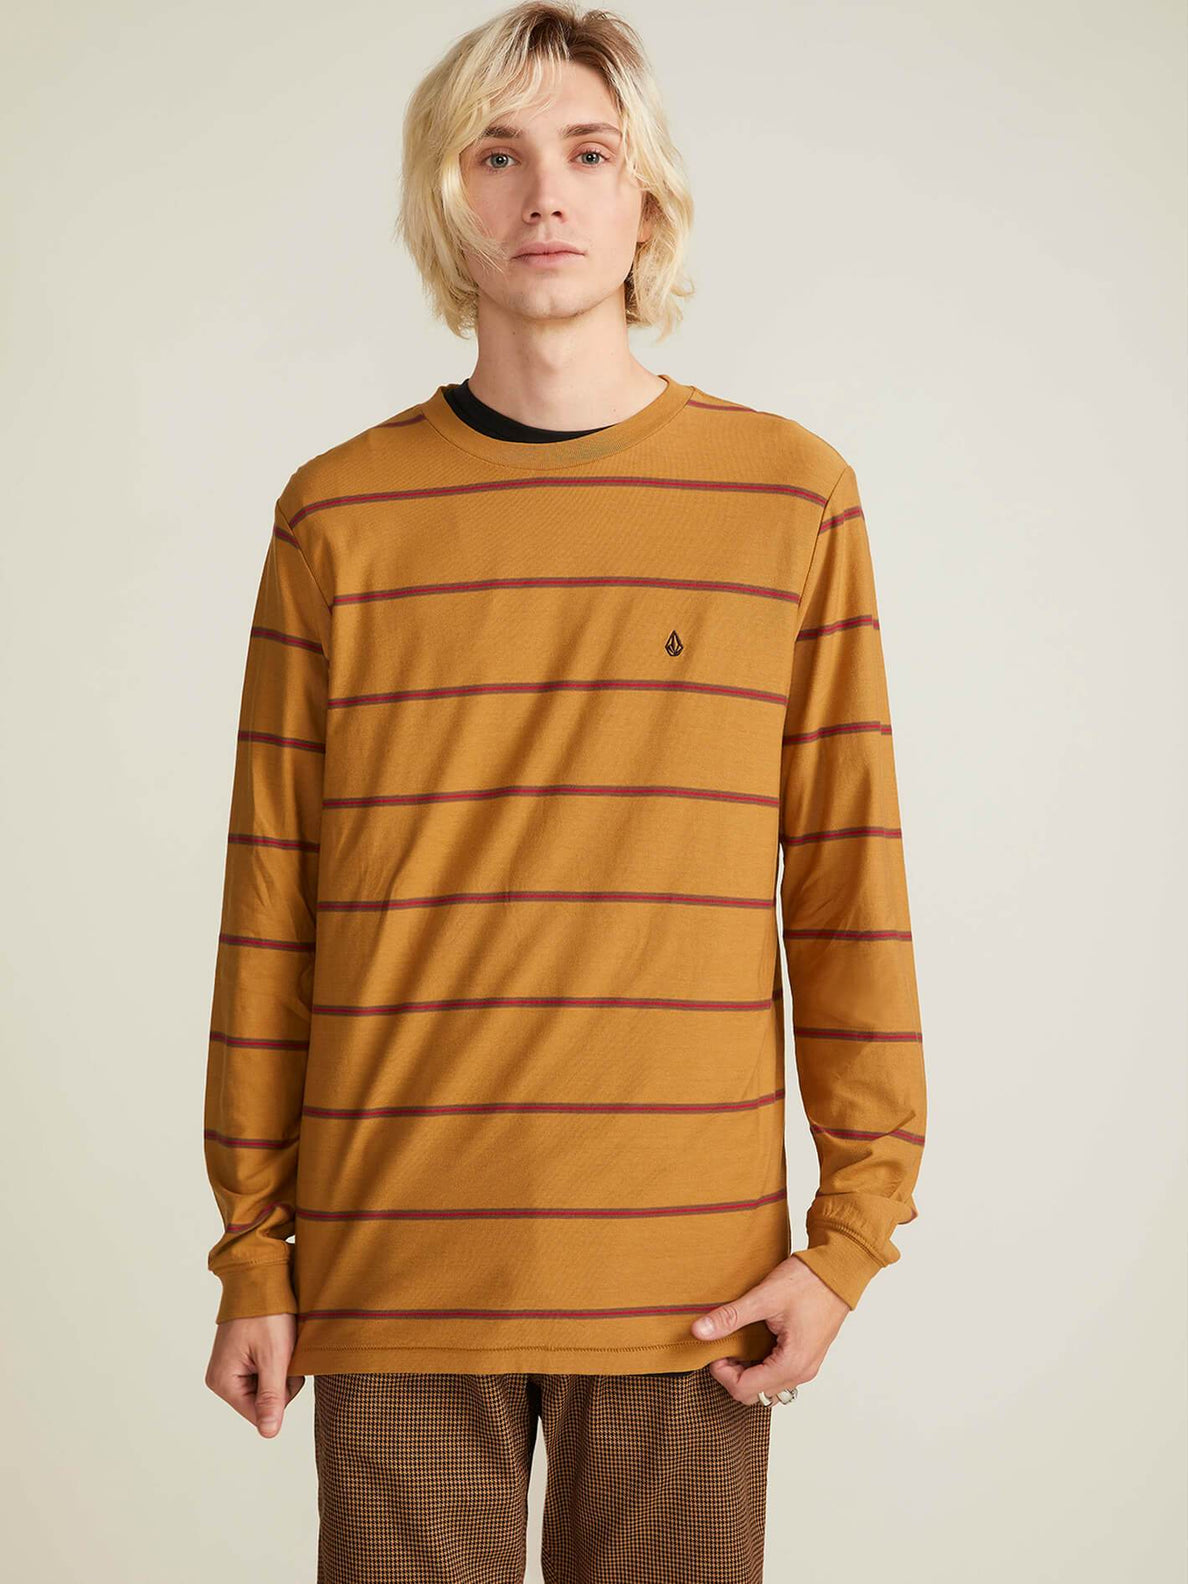 Randall Crew Long Sleeve Tee In Old Gold, Second Alternate View